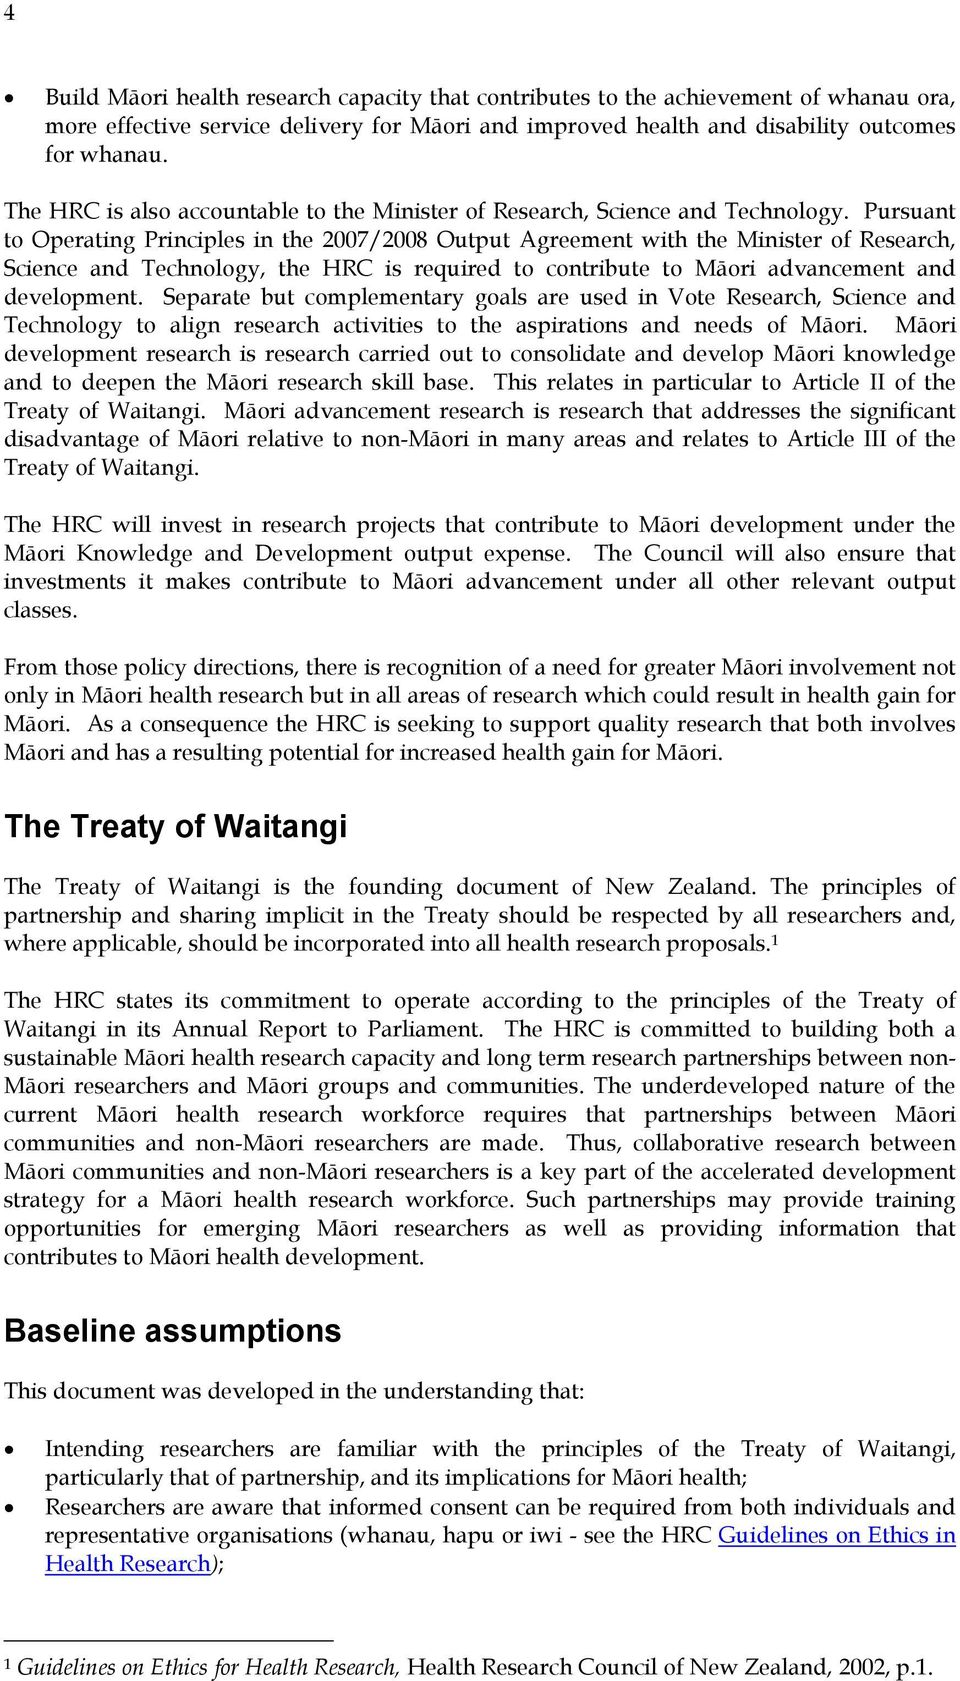 Pursuant to Operating Principles in the 2007/2008 Output Agreement with the Minister of Research, Science and Technology, the HRC is required to contribute to Māori advancement and development.